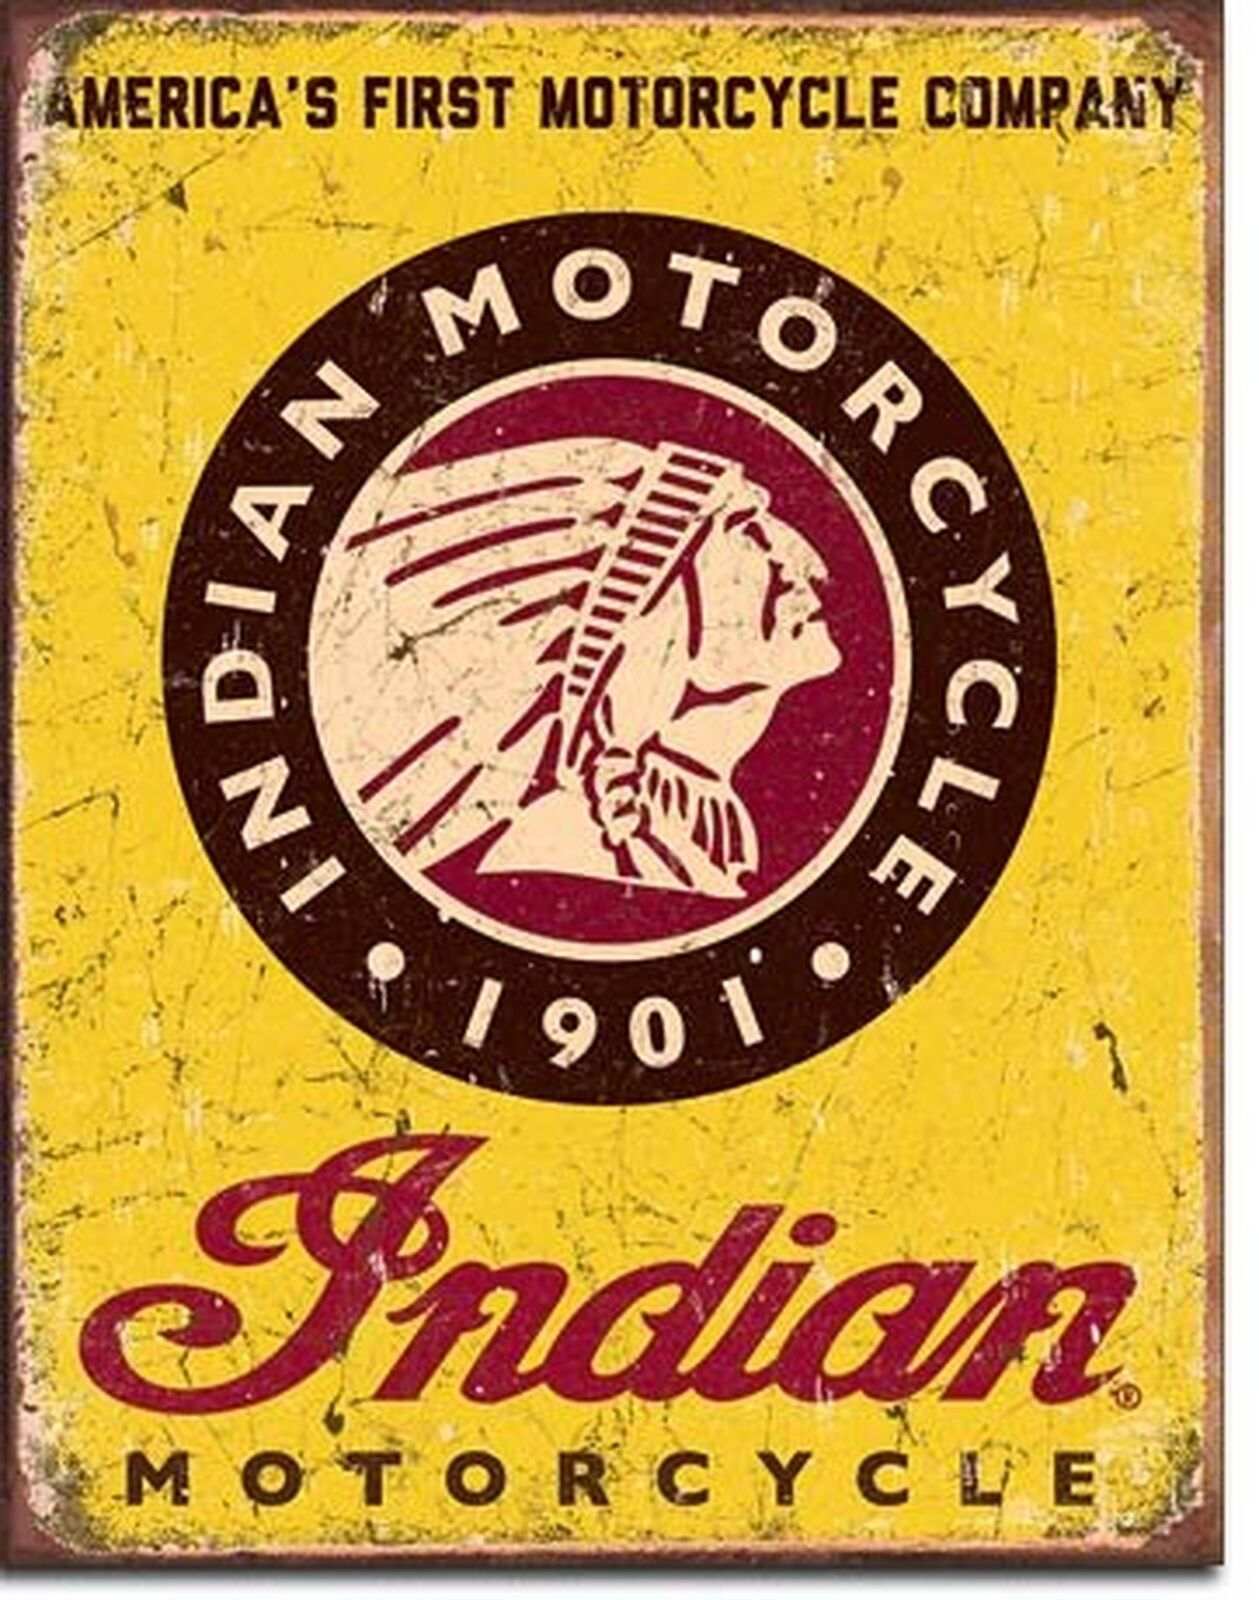 """Authorized Indian Parts and Service Tin Sign 16/"""" W x 12.5/"""" H"""